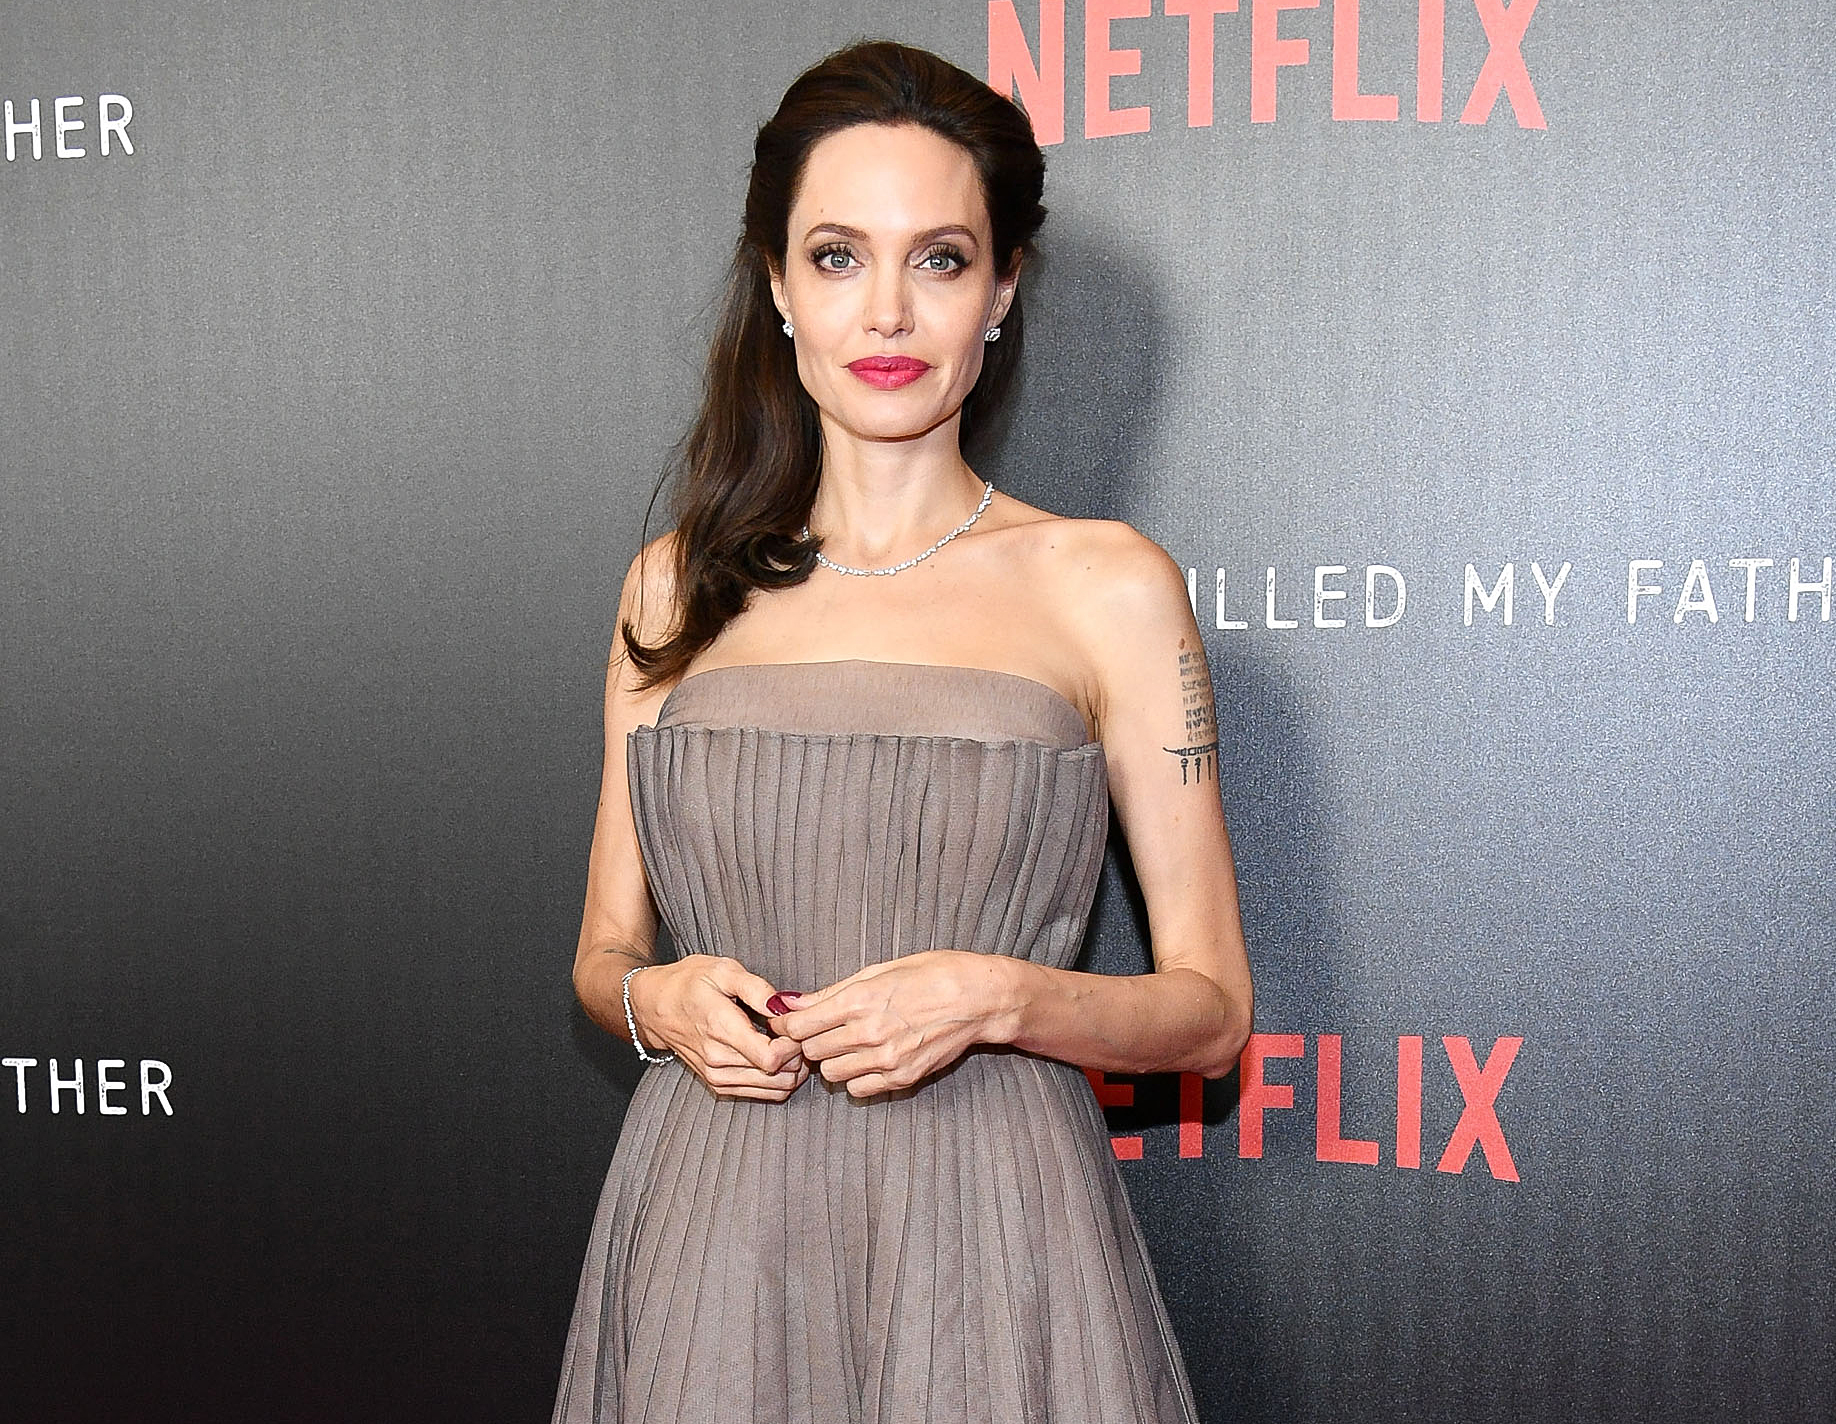 'No relationship with their father is harmful': Angelina Jolie may lose custody